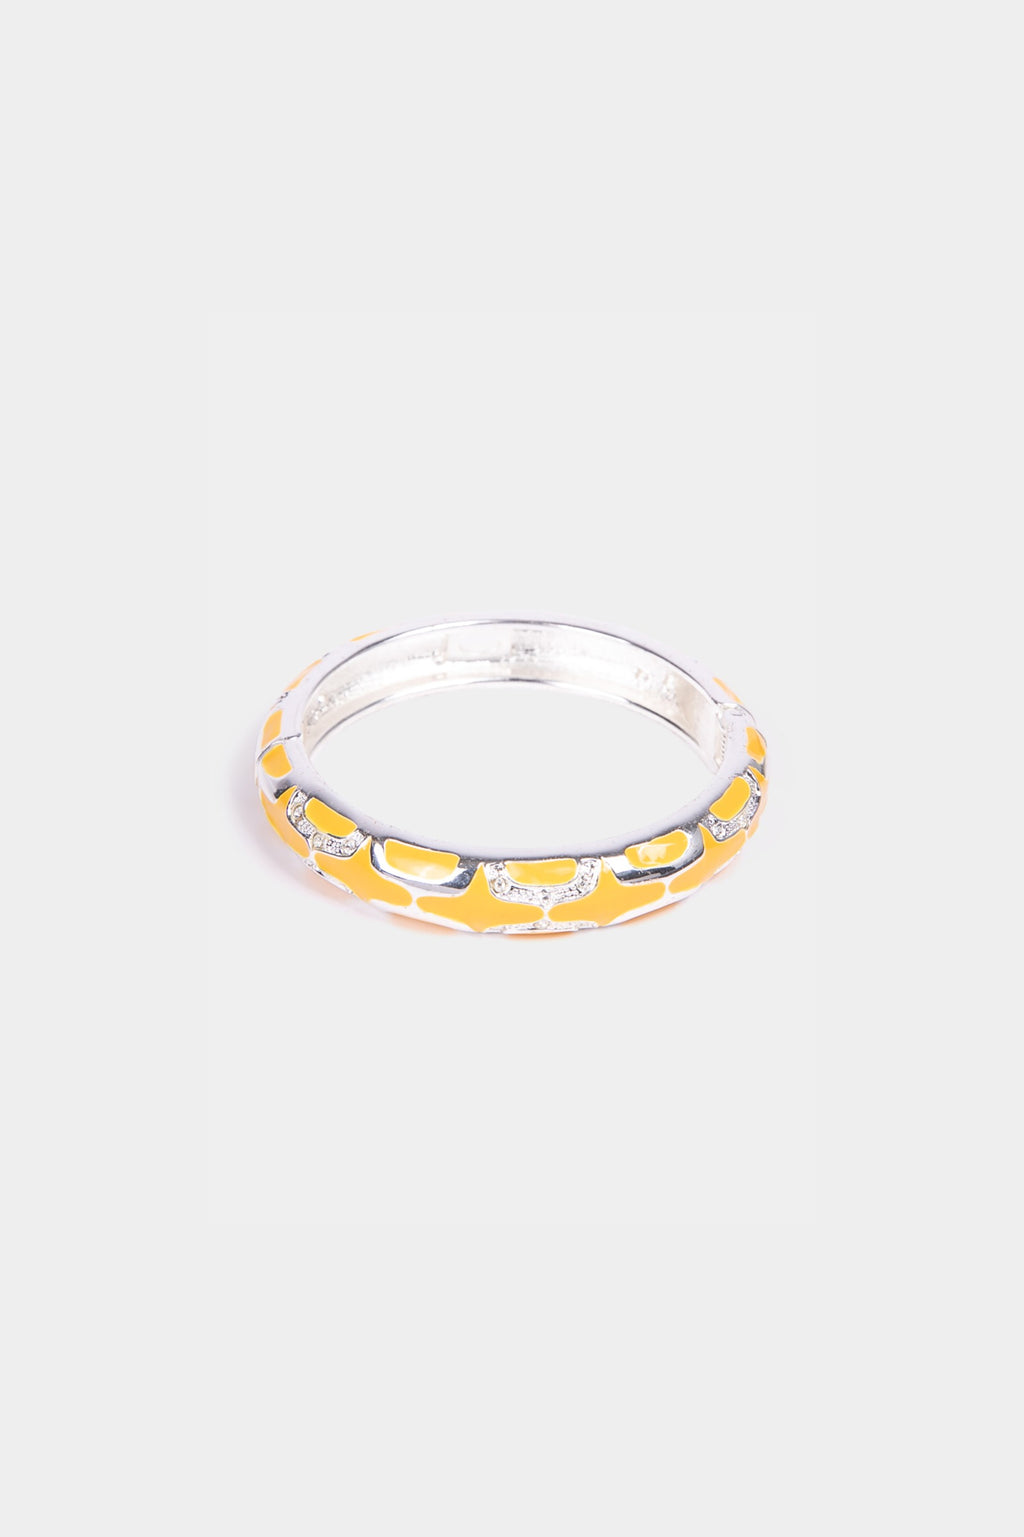 Yellow Enamel and Rhinestone Bracelet